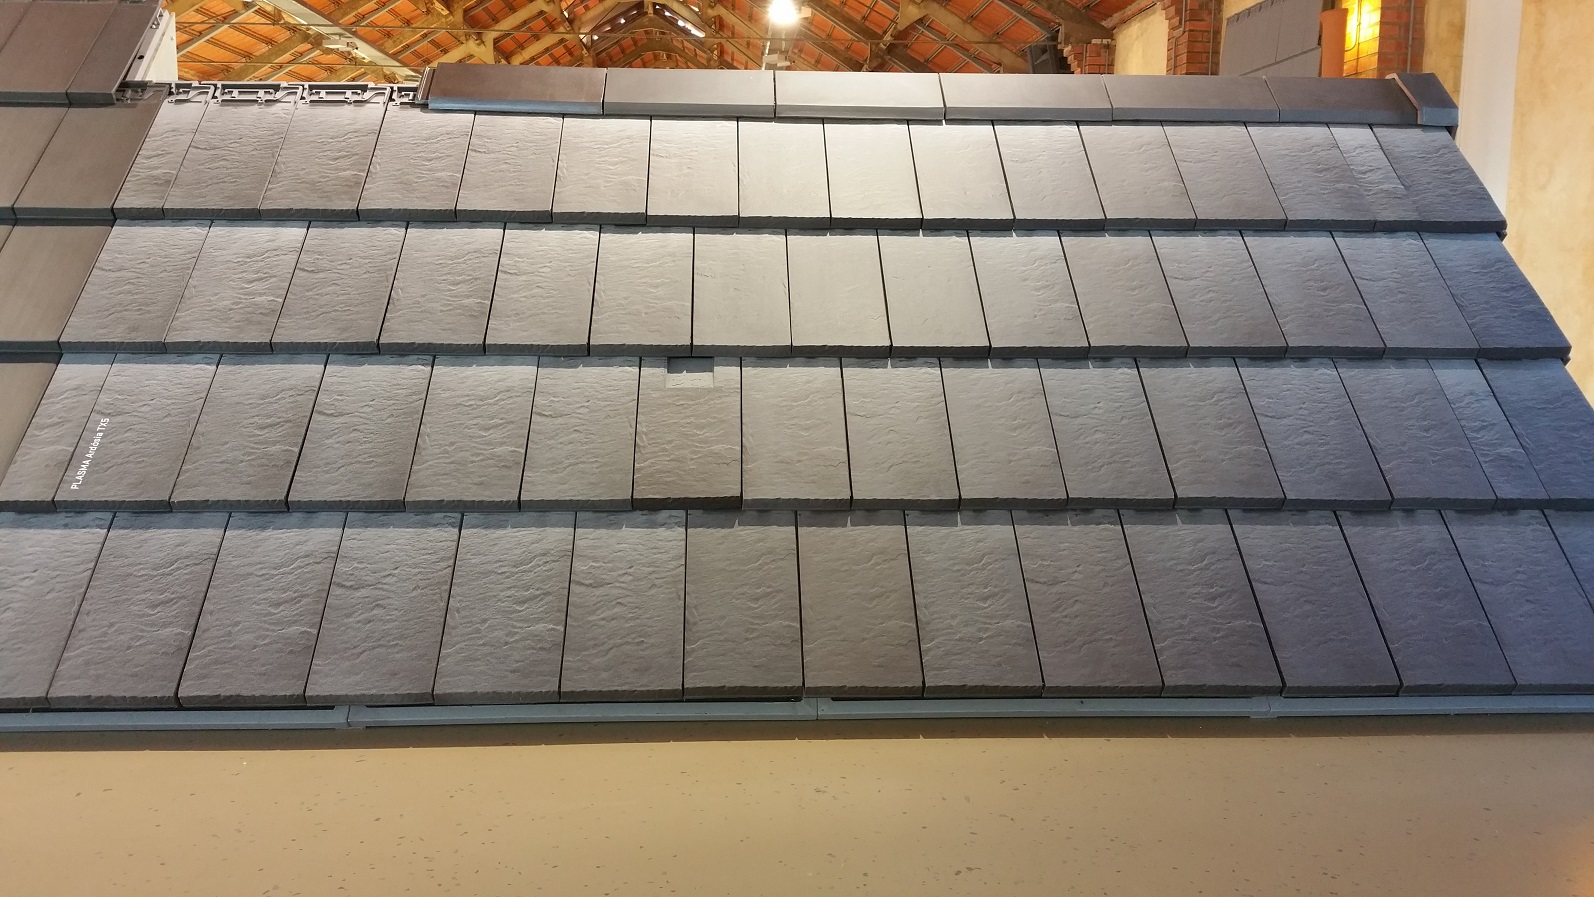 CS Plasma TX5 Ardosia slate textured clay tile with light shading for a weathered slate look